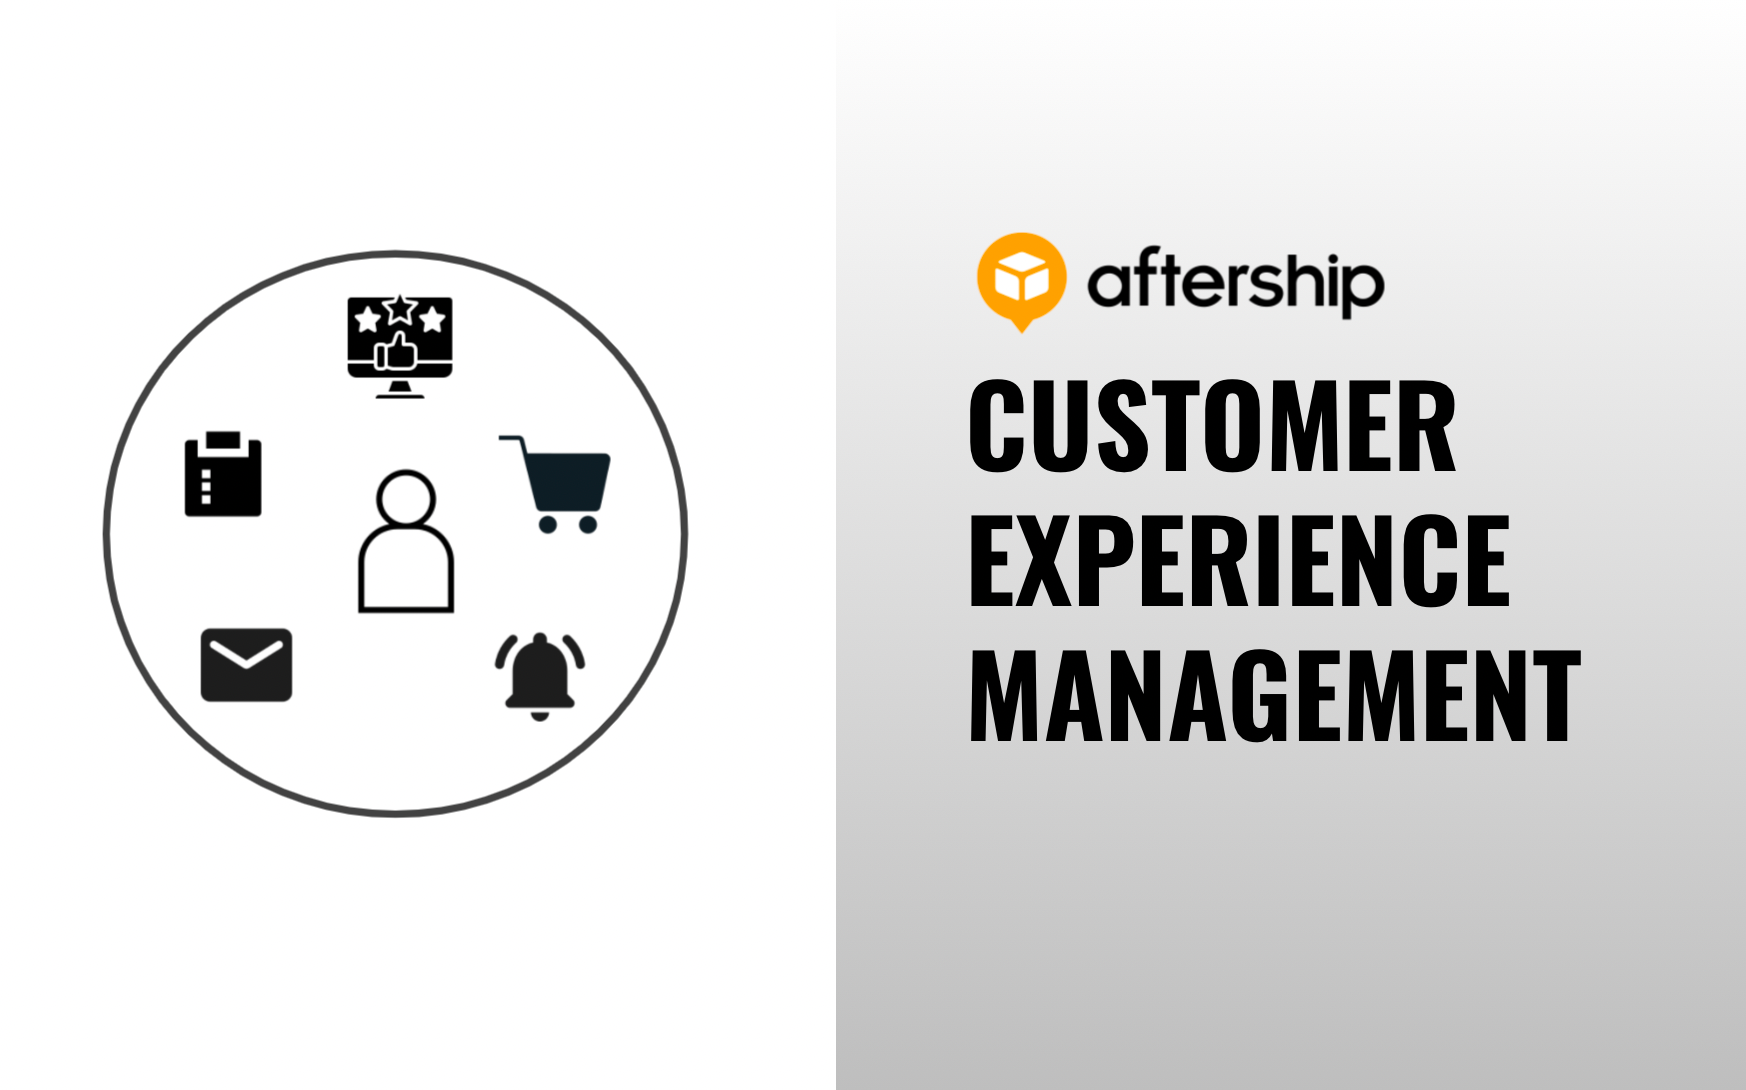 Customer Experience Management: What is it and How to Leverage it for Your Business?